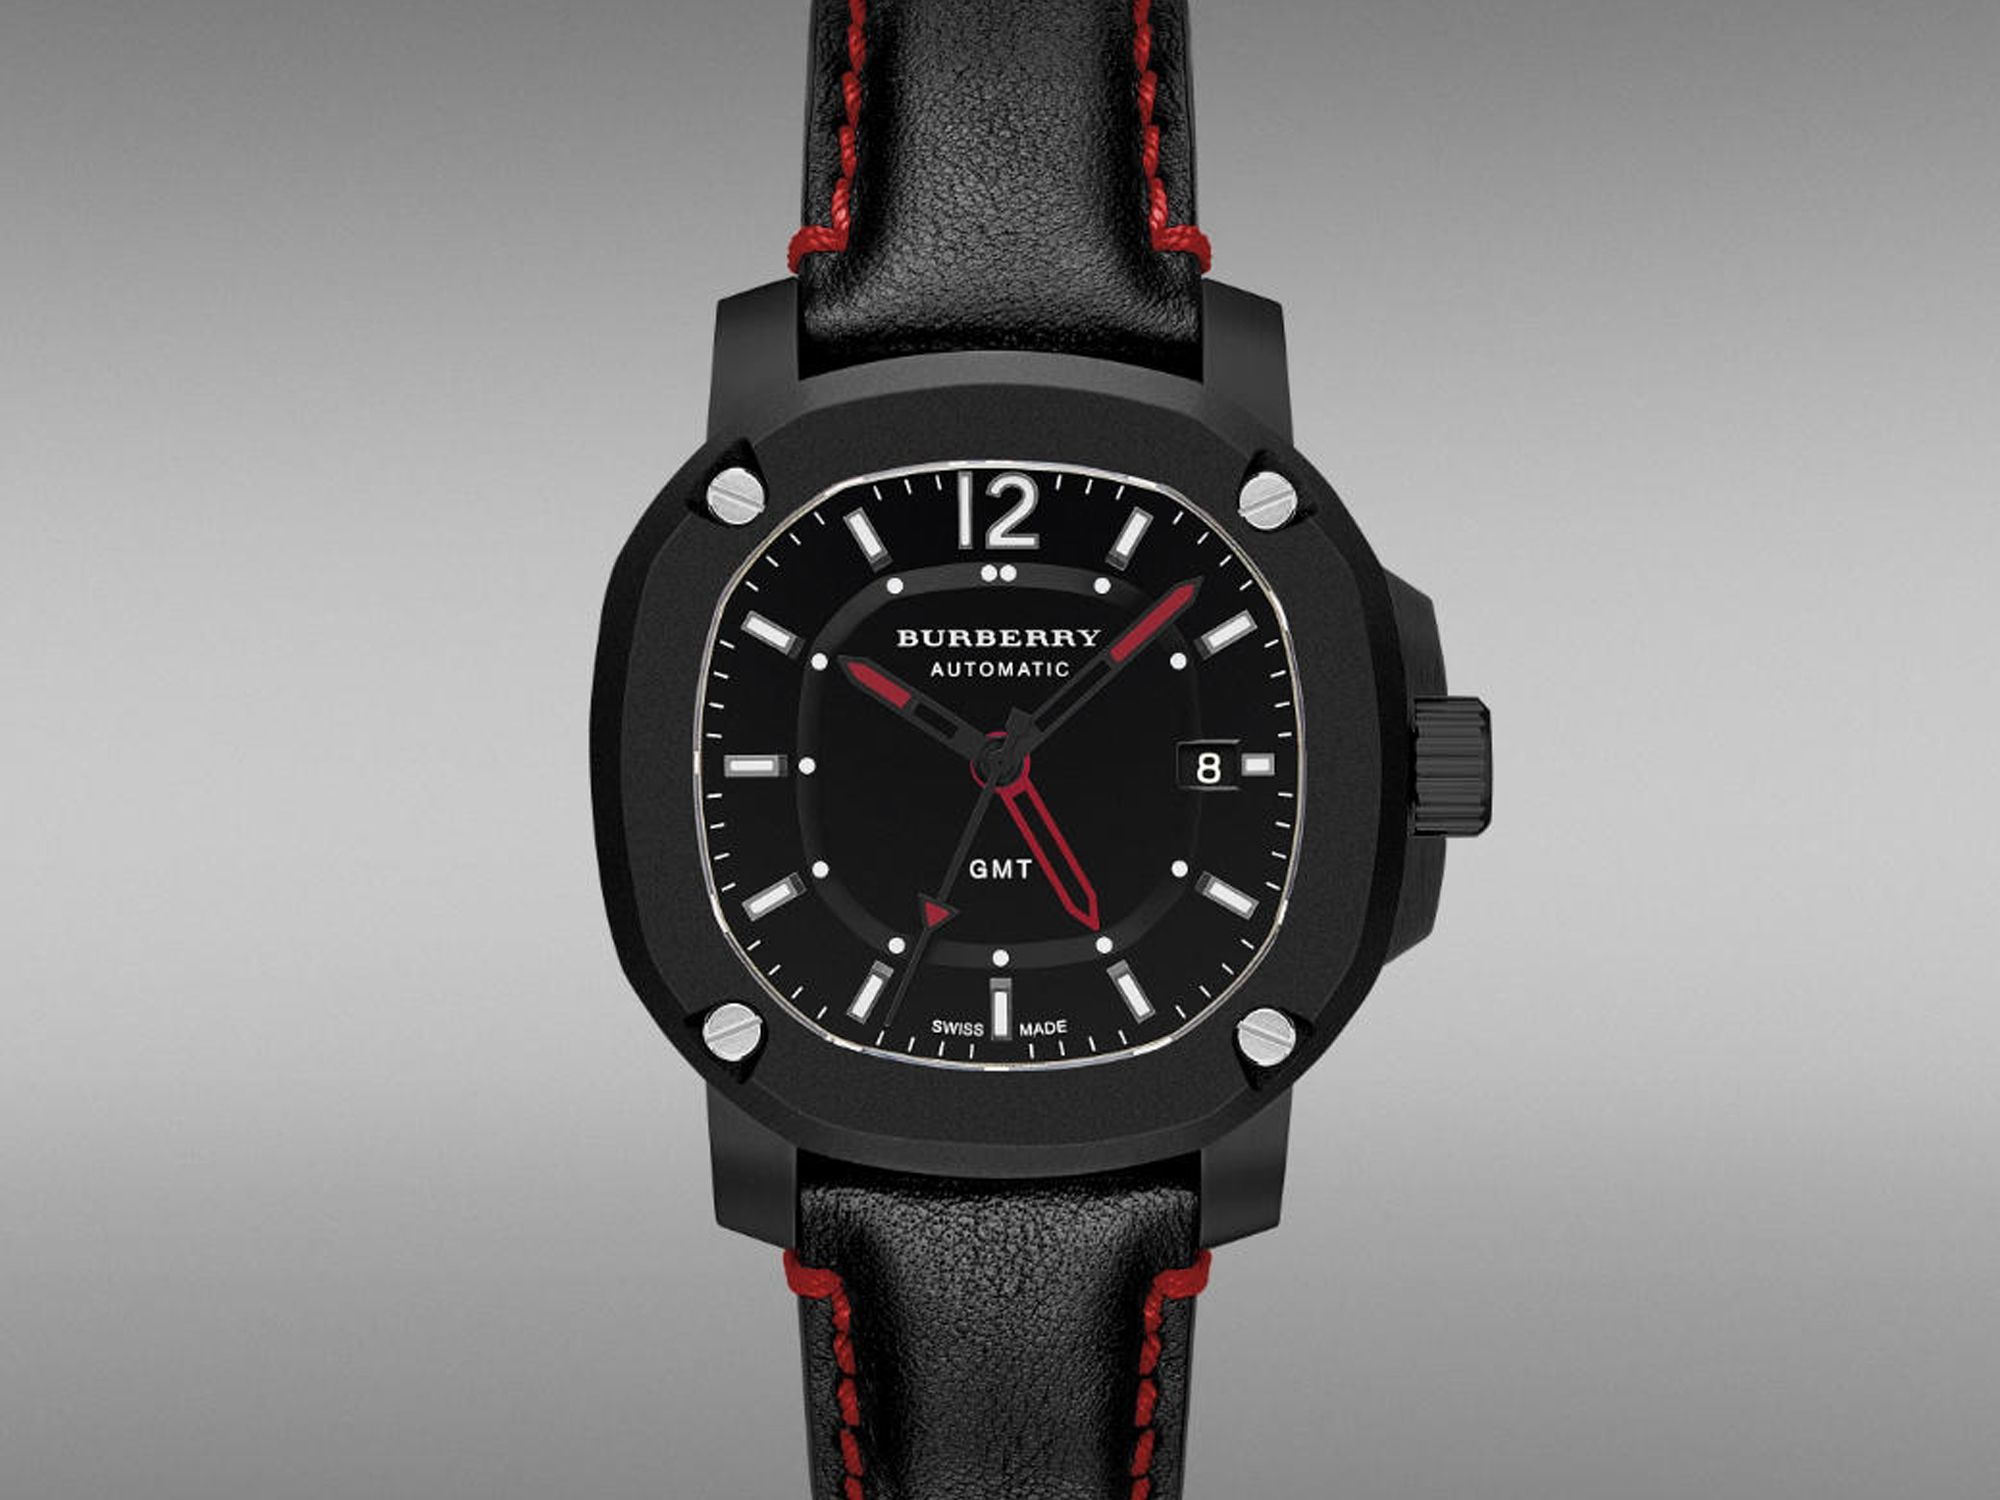 81a52574048 10 Of The Best Watches Under £2000